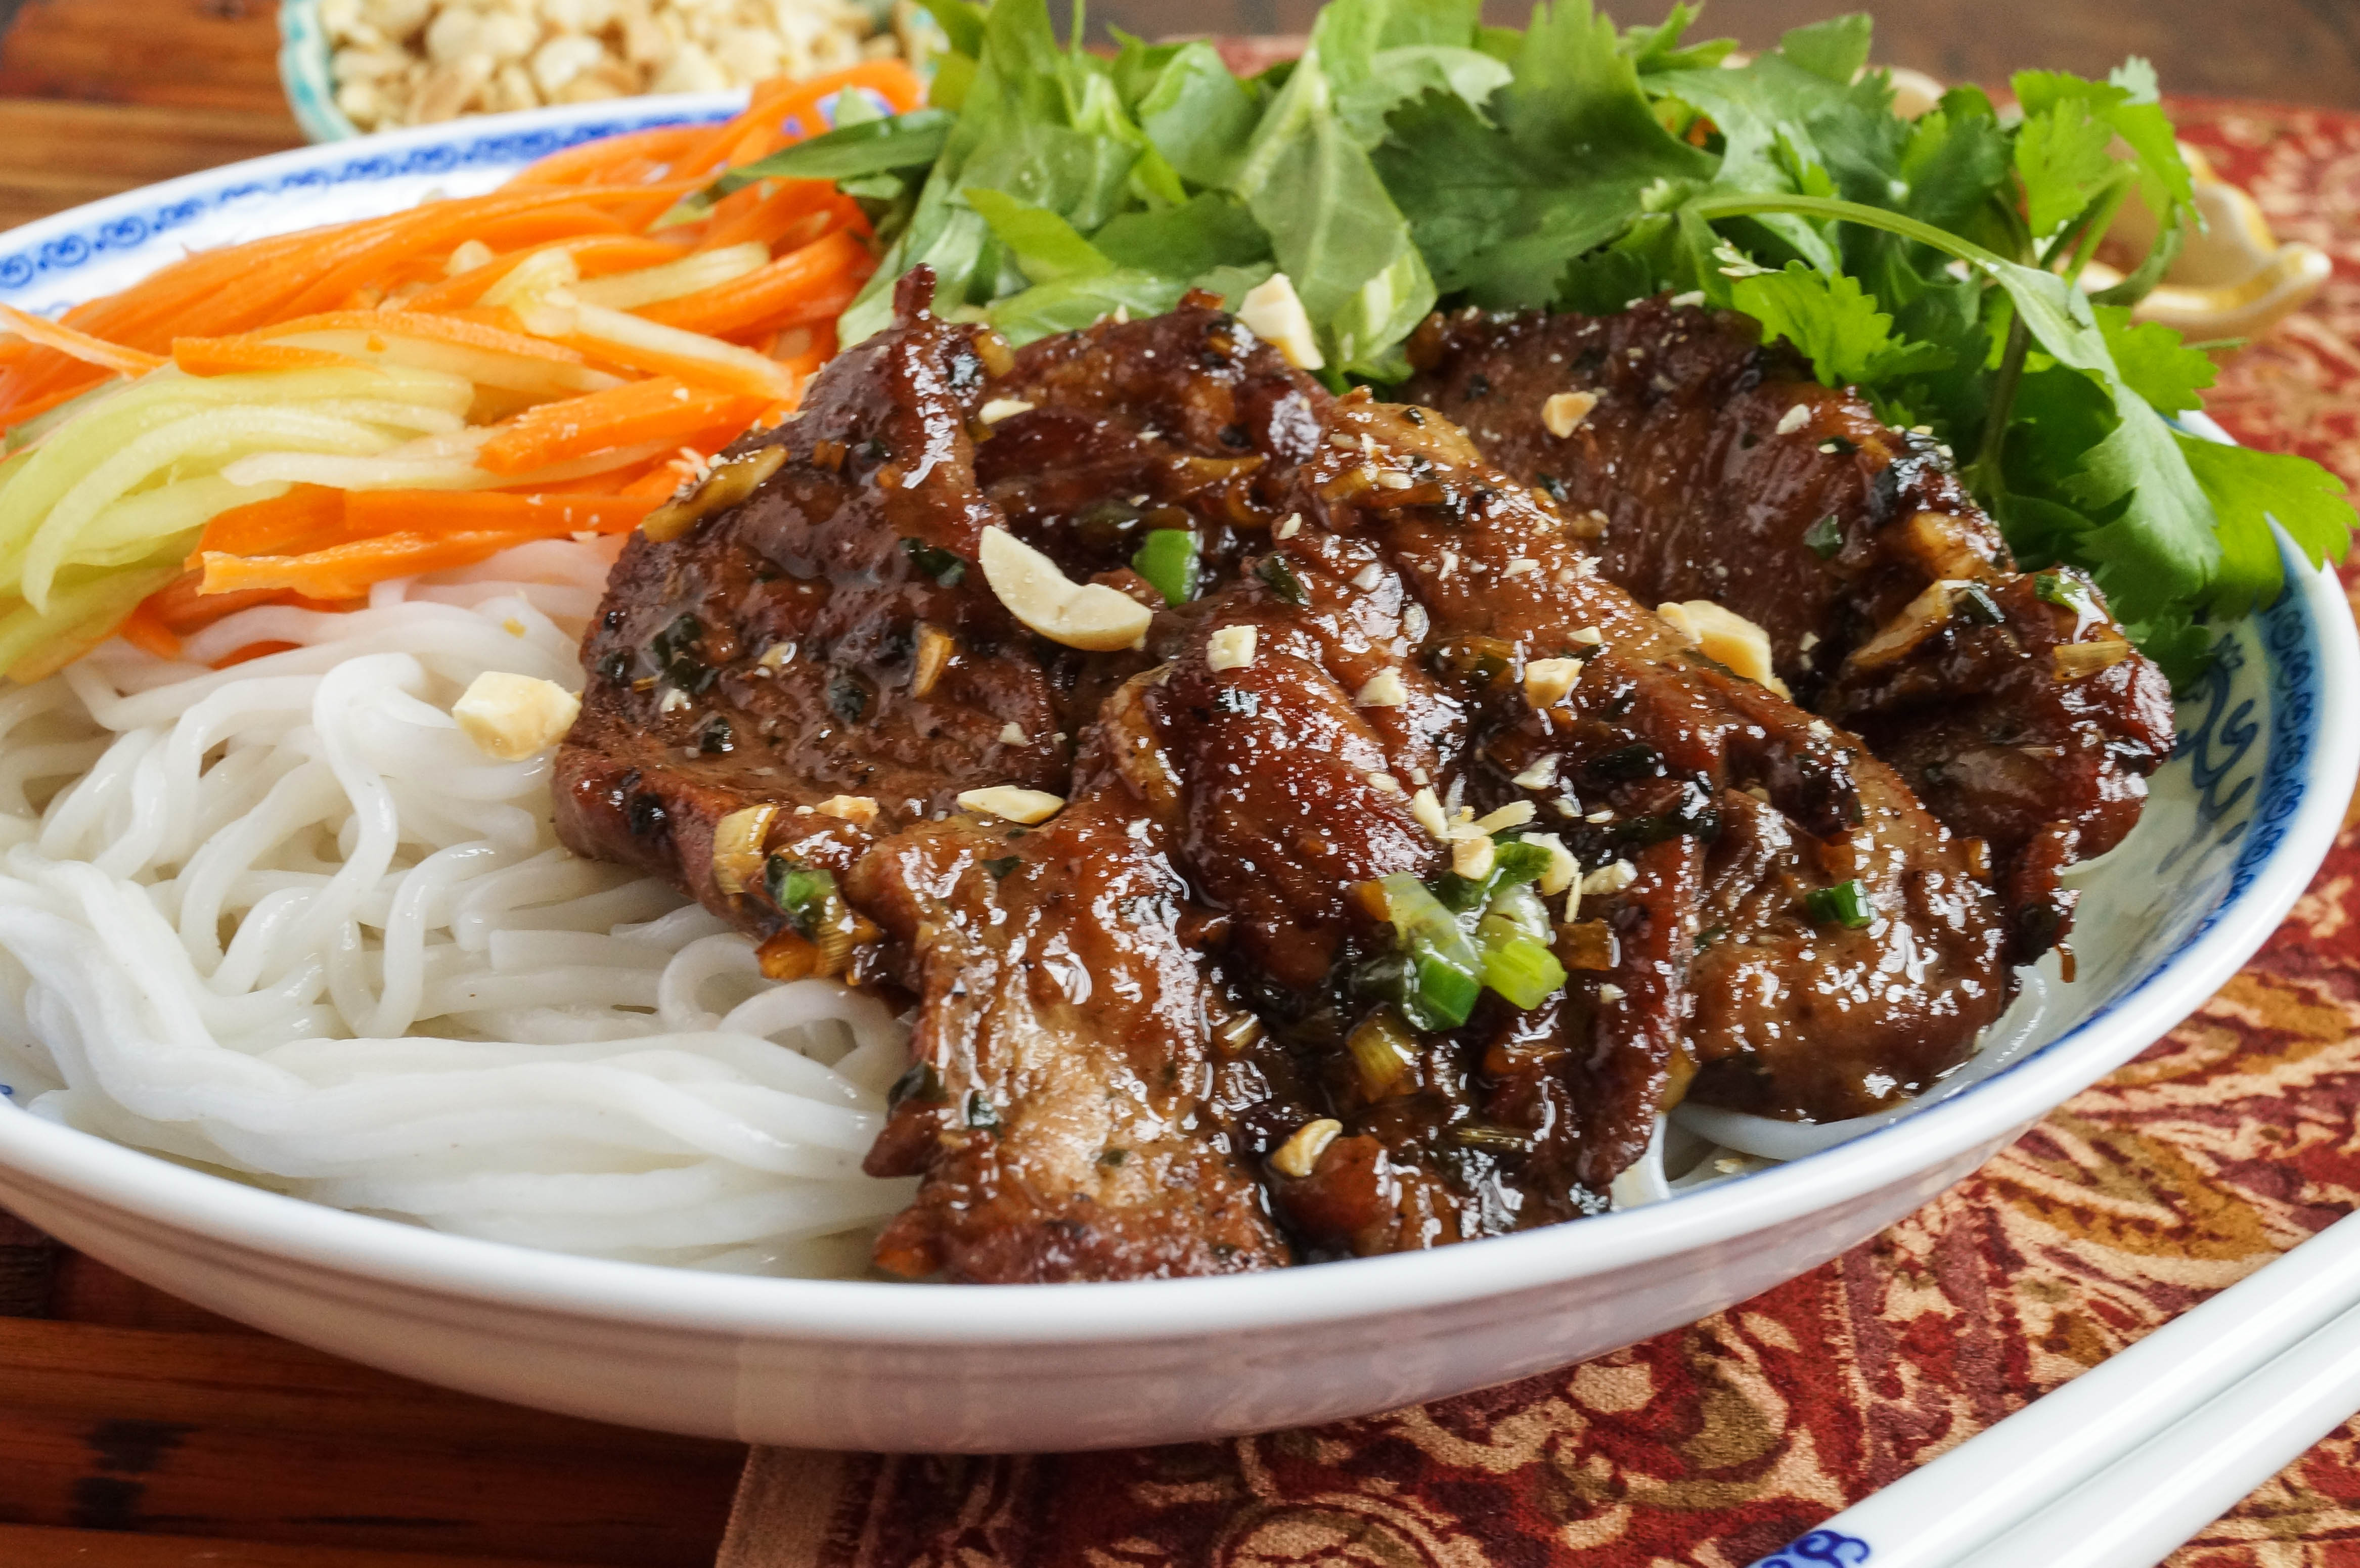 Bún Thịt Nướng (Vietnamese Grilled Pork with Rice Noodles) - Tara's Multicultural Table